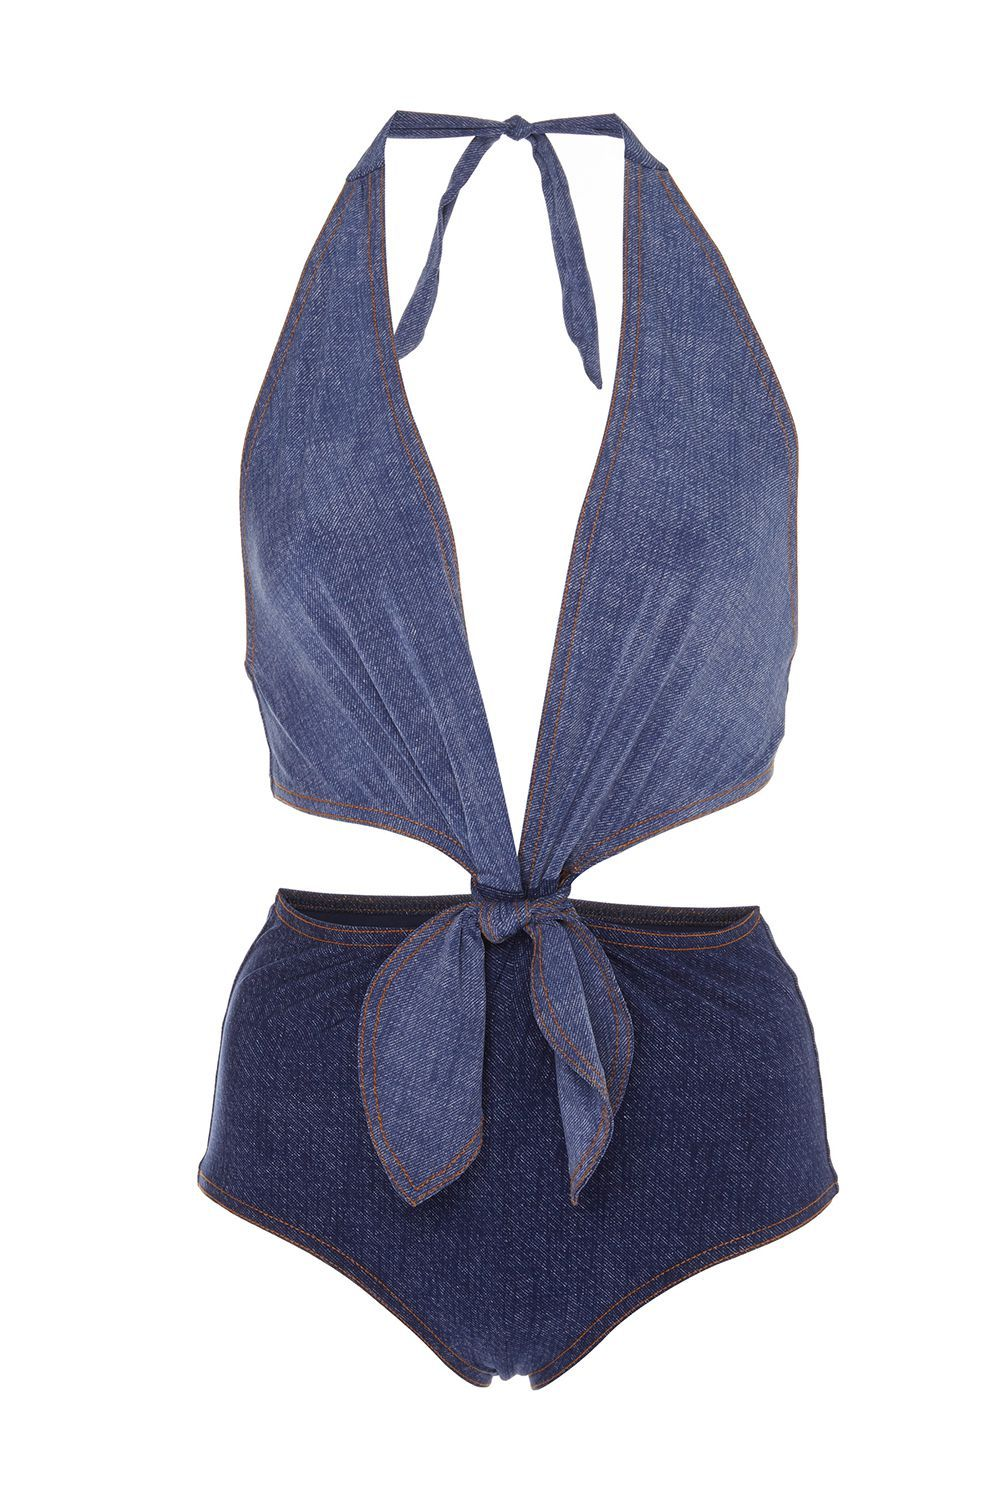 Best Denim One-Piece Louise Cutout Denim Swimsuit Karla Colletto modaoperandi.com $310.00 SHOP IT Blue jeans fans rejoice, I found a cute denim swimsuit. You'll quickly count this as one of your favorites because of the plunging neckline and and cutouts with a sexy front tie fastening.